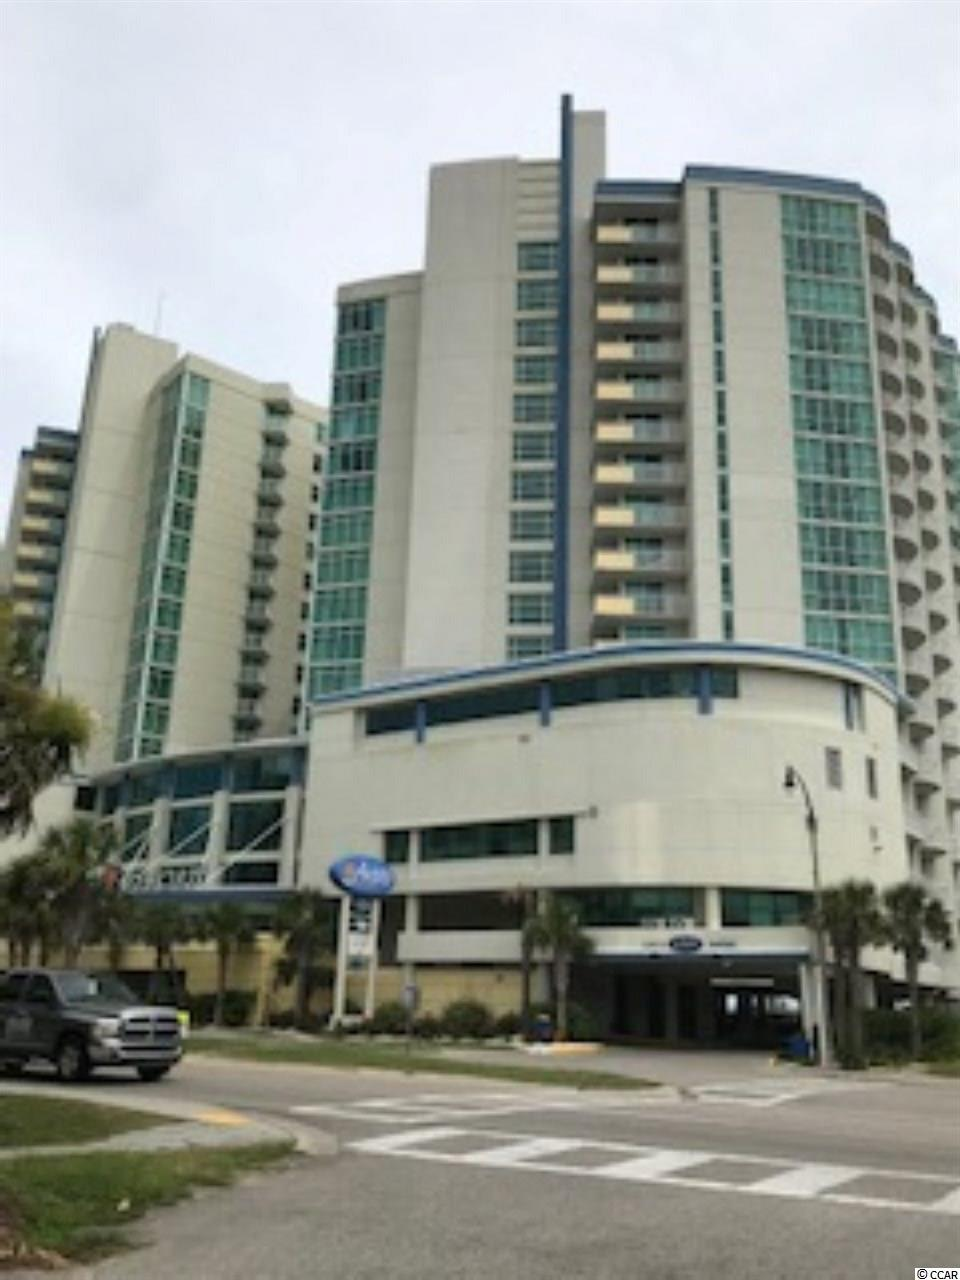 """This oceanfront 2 BR/ 2 BA double bay """"F"""" style unit is rarely ever for sale a the Avista Resort. It has been completely upgraded to the """"GOLD"""" tier on the rental program. Located on the north end and on the 2nd floor, it has the higher 10' ceilings which makes it appear much more spacious. The higher ceilings, the ceiling to floor glass and balcony sliding doors offers an extensive view of the ocean. Upgrades include: granite kitchen countertop, granite bathroom vanities, granite LR table top, flat screen TV's, new carpet, new sleeper sofa and LR chairs, refinished DR table & chairs, refinished dressers and night stands with new hardware, new mattresses, new bedding and comforters, new draperies and stackable washer & dyer. The Avista us renowned for it spectacular amenities - indoor & outdoor pools, lazy river, onsite restaurant and exercise room.  The Avista is walking distance to all the bars and restaurants on Main Street as well as other actives offered by the City of NMB. Enjoy all the shagging venues literally steps away from their property. Don't miss your opportunity to own this highly sought after floor plan, and start out at the top of the rental tier maximizing the most of your rental revenue."""